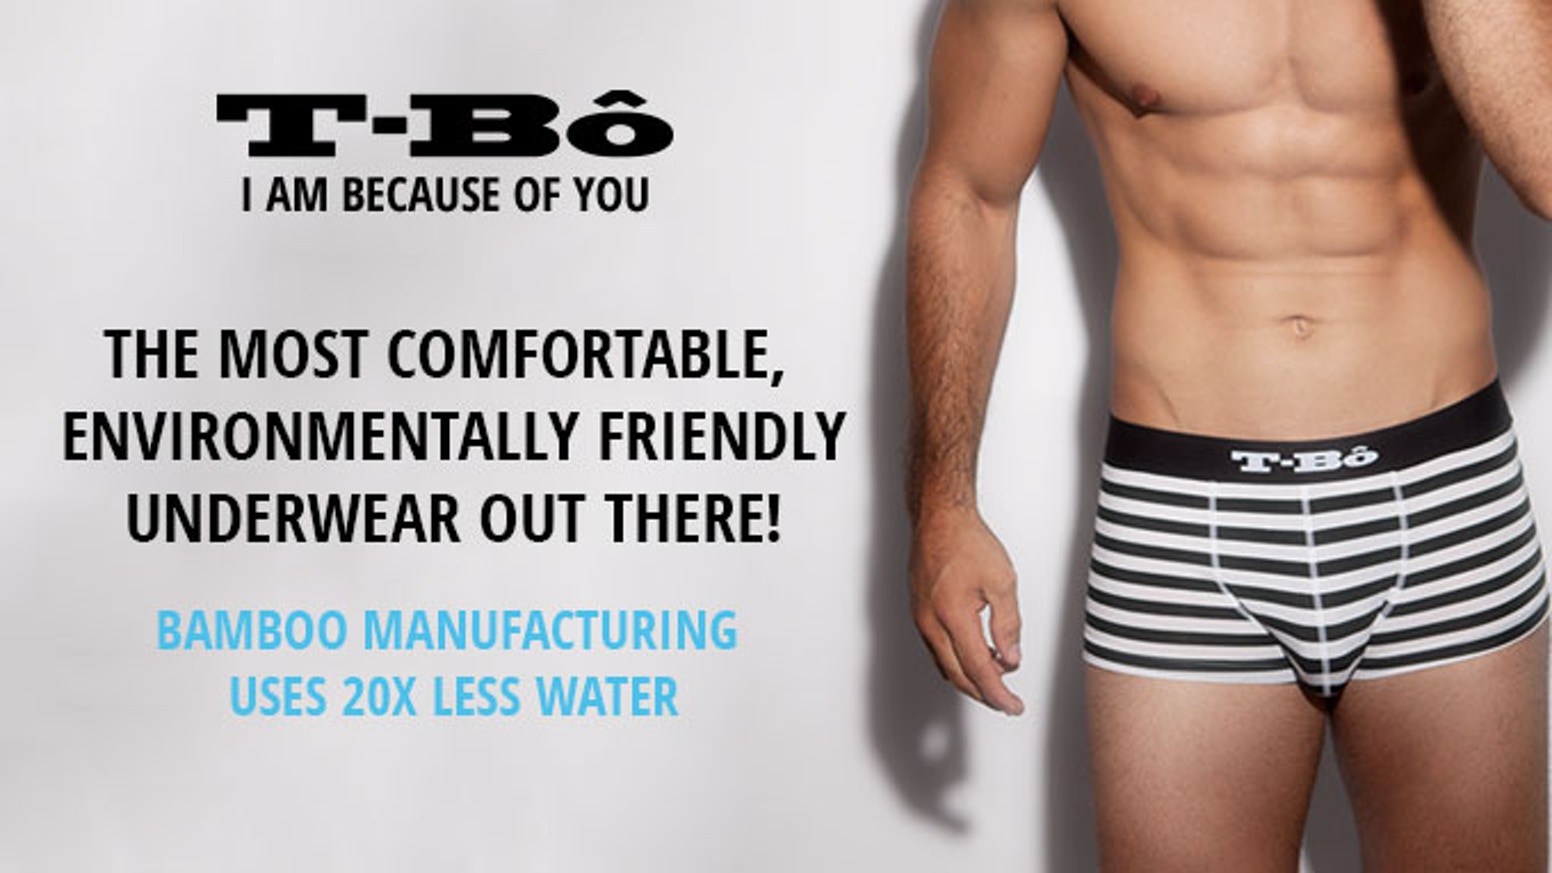 3ddece7d2aa1 T-Bô - The Most Comfortable, Environmentally Friendly undies by T-Bô ...